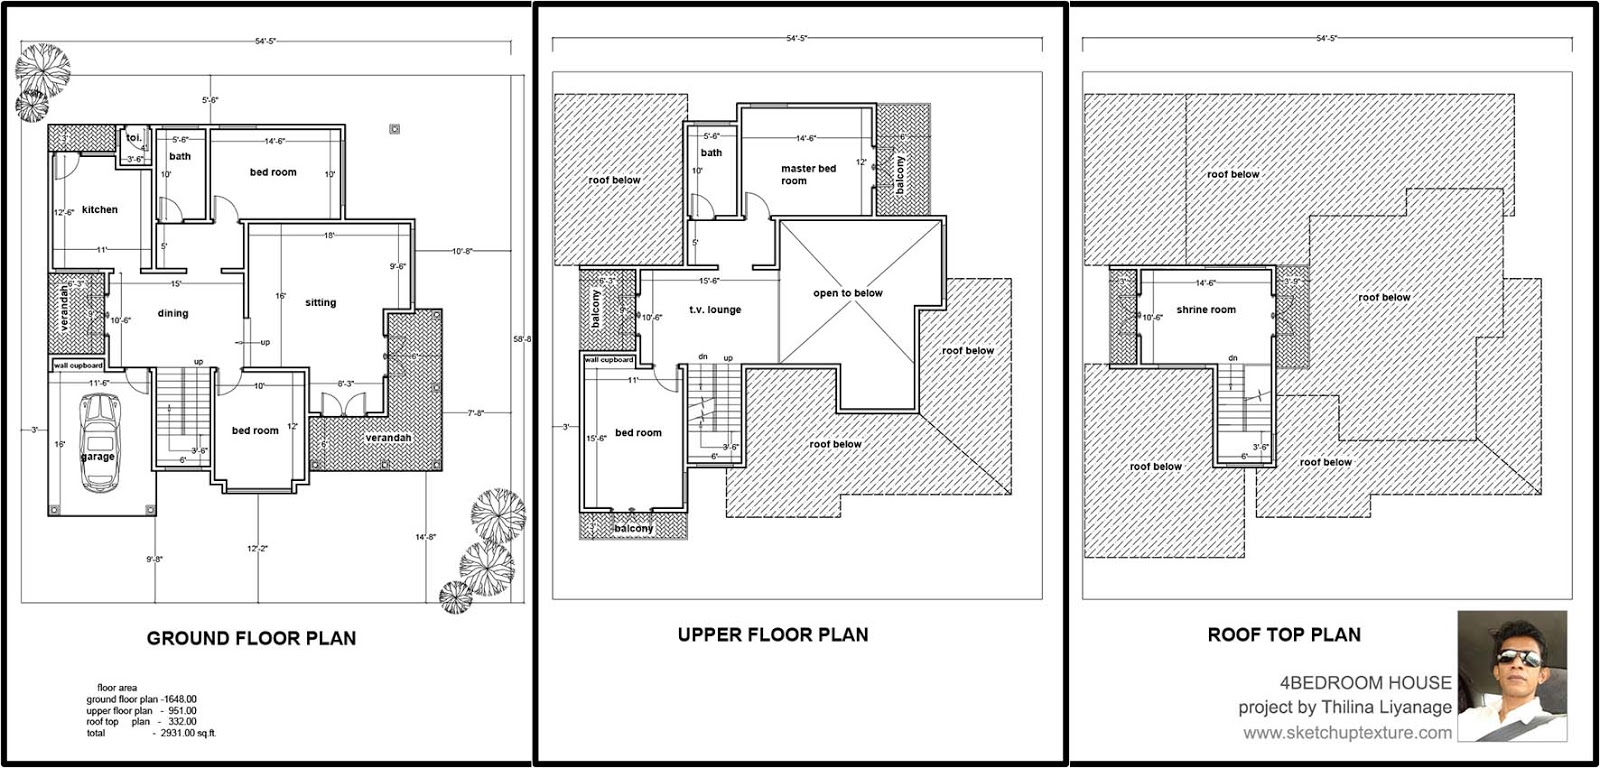 Image gallery sketchup 2d for Floor plans in sketchup